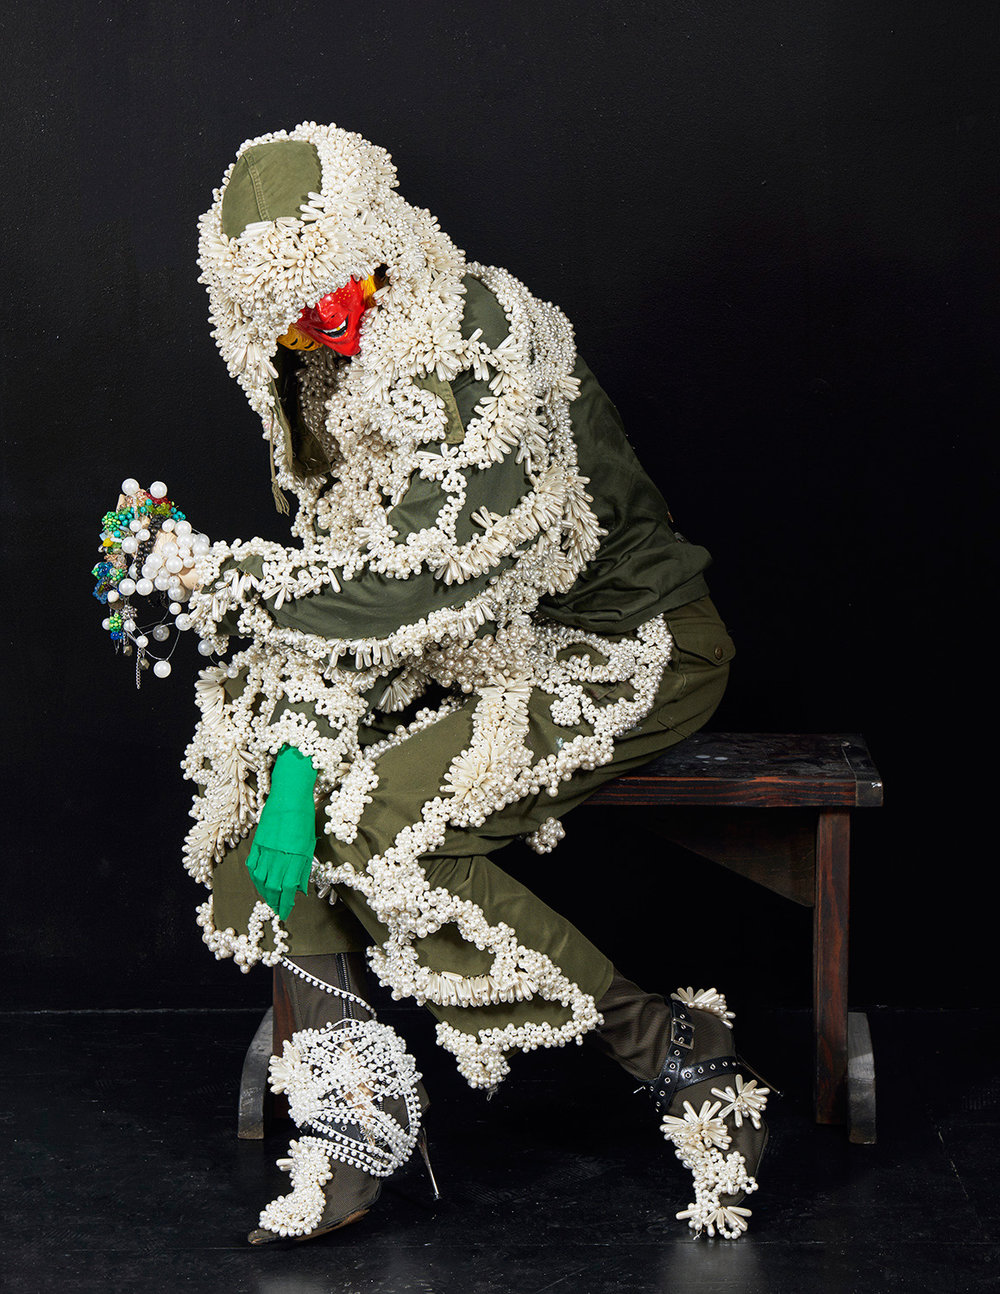 Roll Me in a Grain of Salt and I Follow You until my Tears Run Dry, 2016, military clothing, fake pearls, thread, bullets, mannequin, plastic mask, 121.92 x 81.28 x 63.5 cm